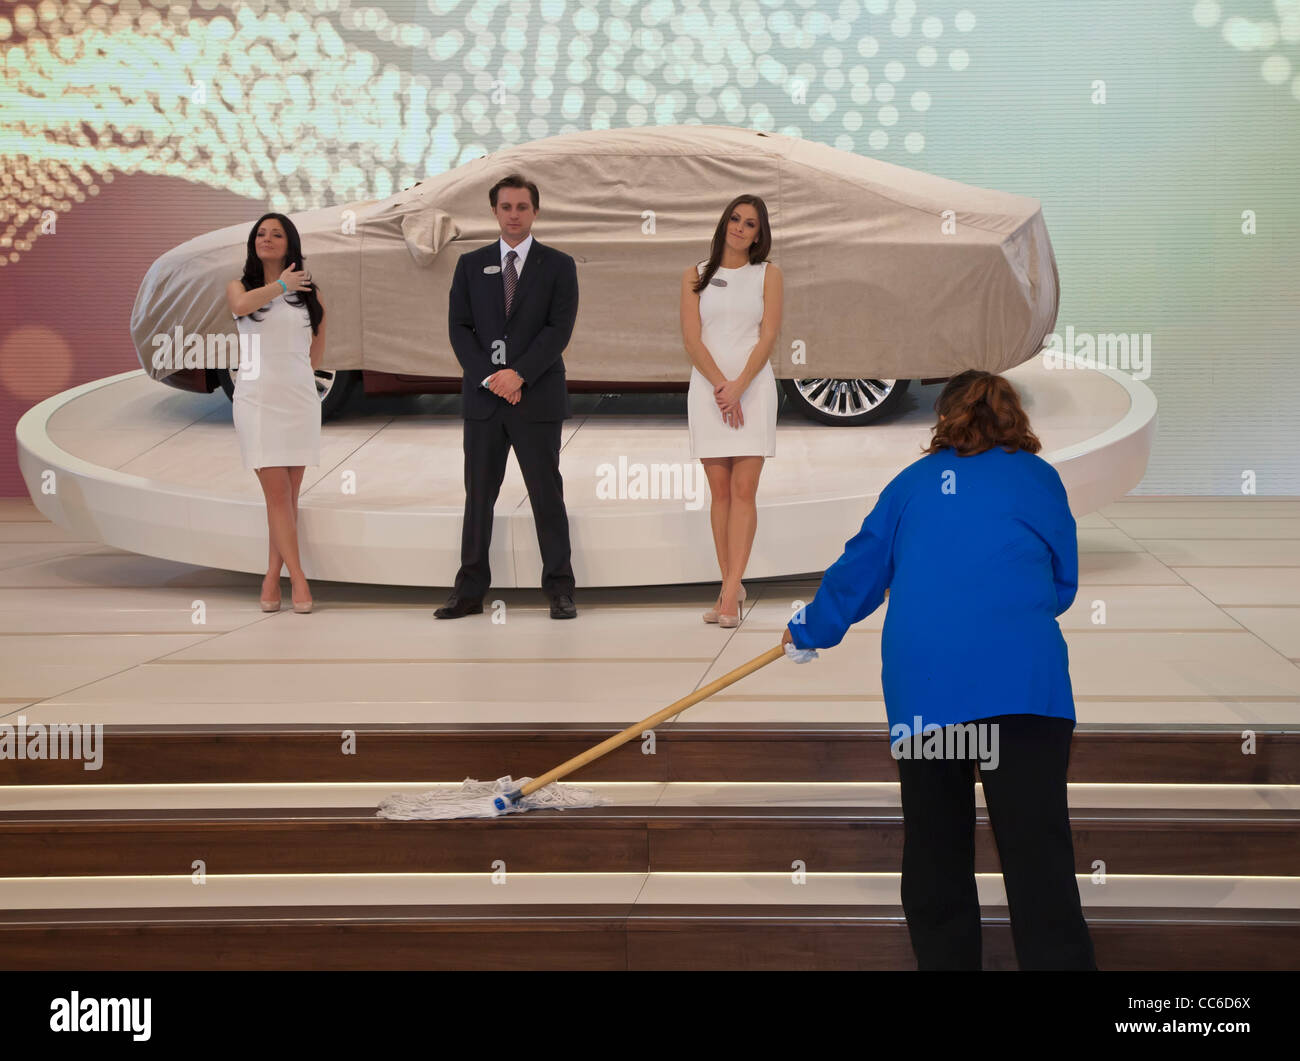 Janitor and Models at Auto Show - Stock Image